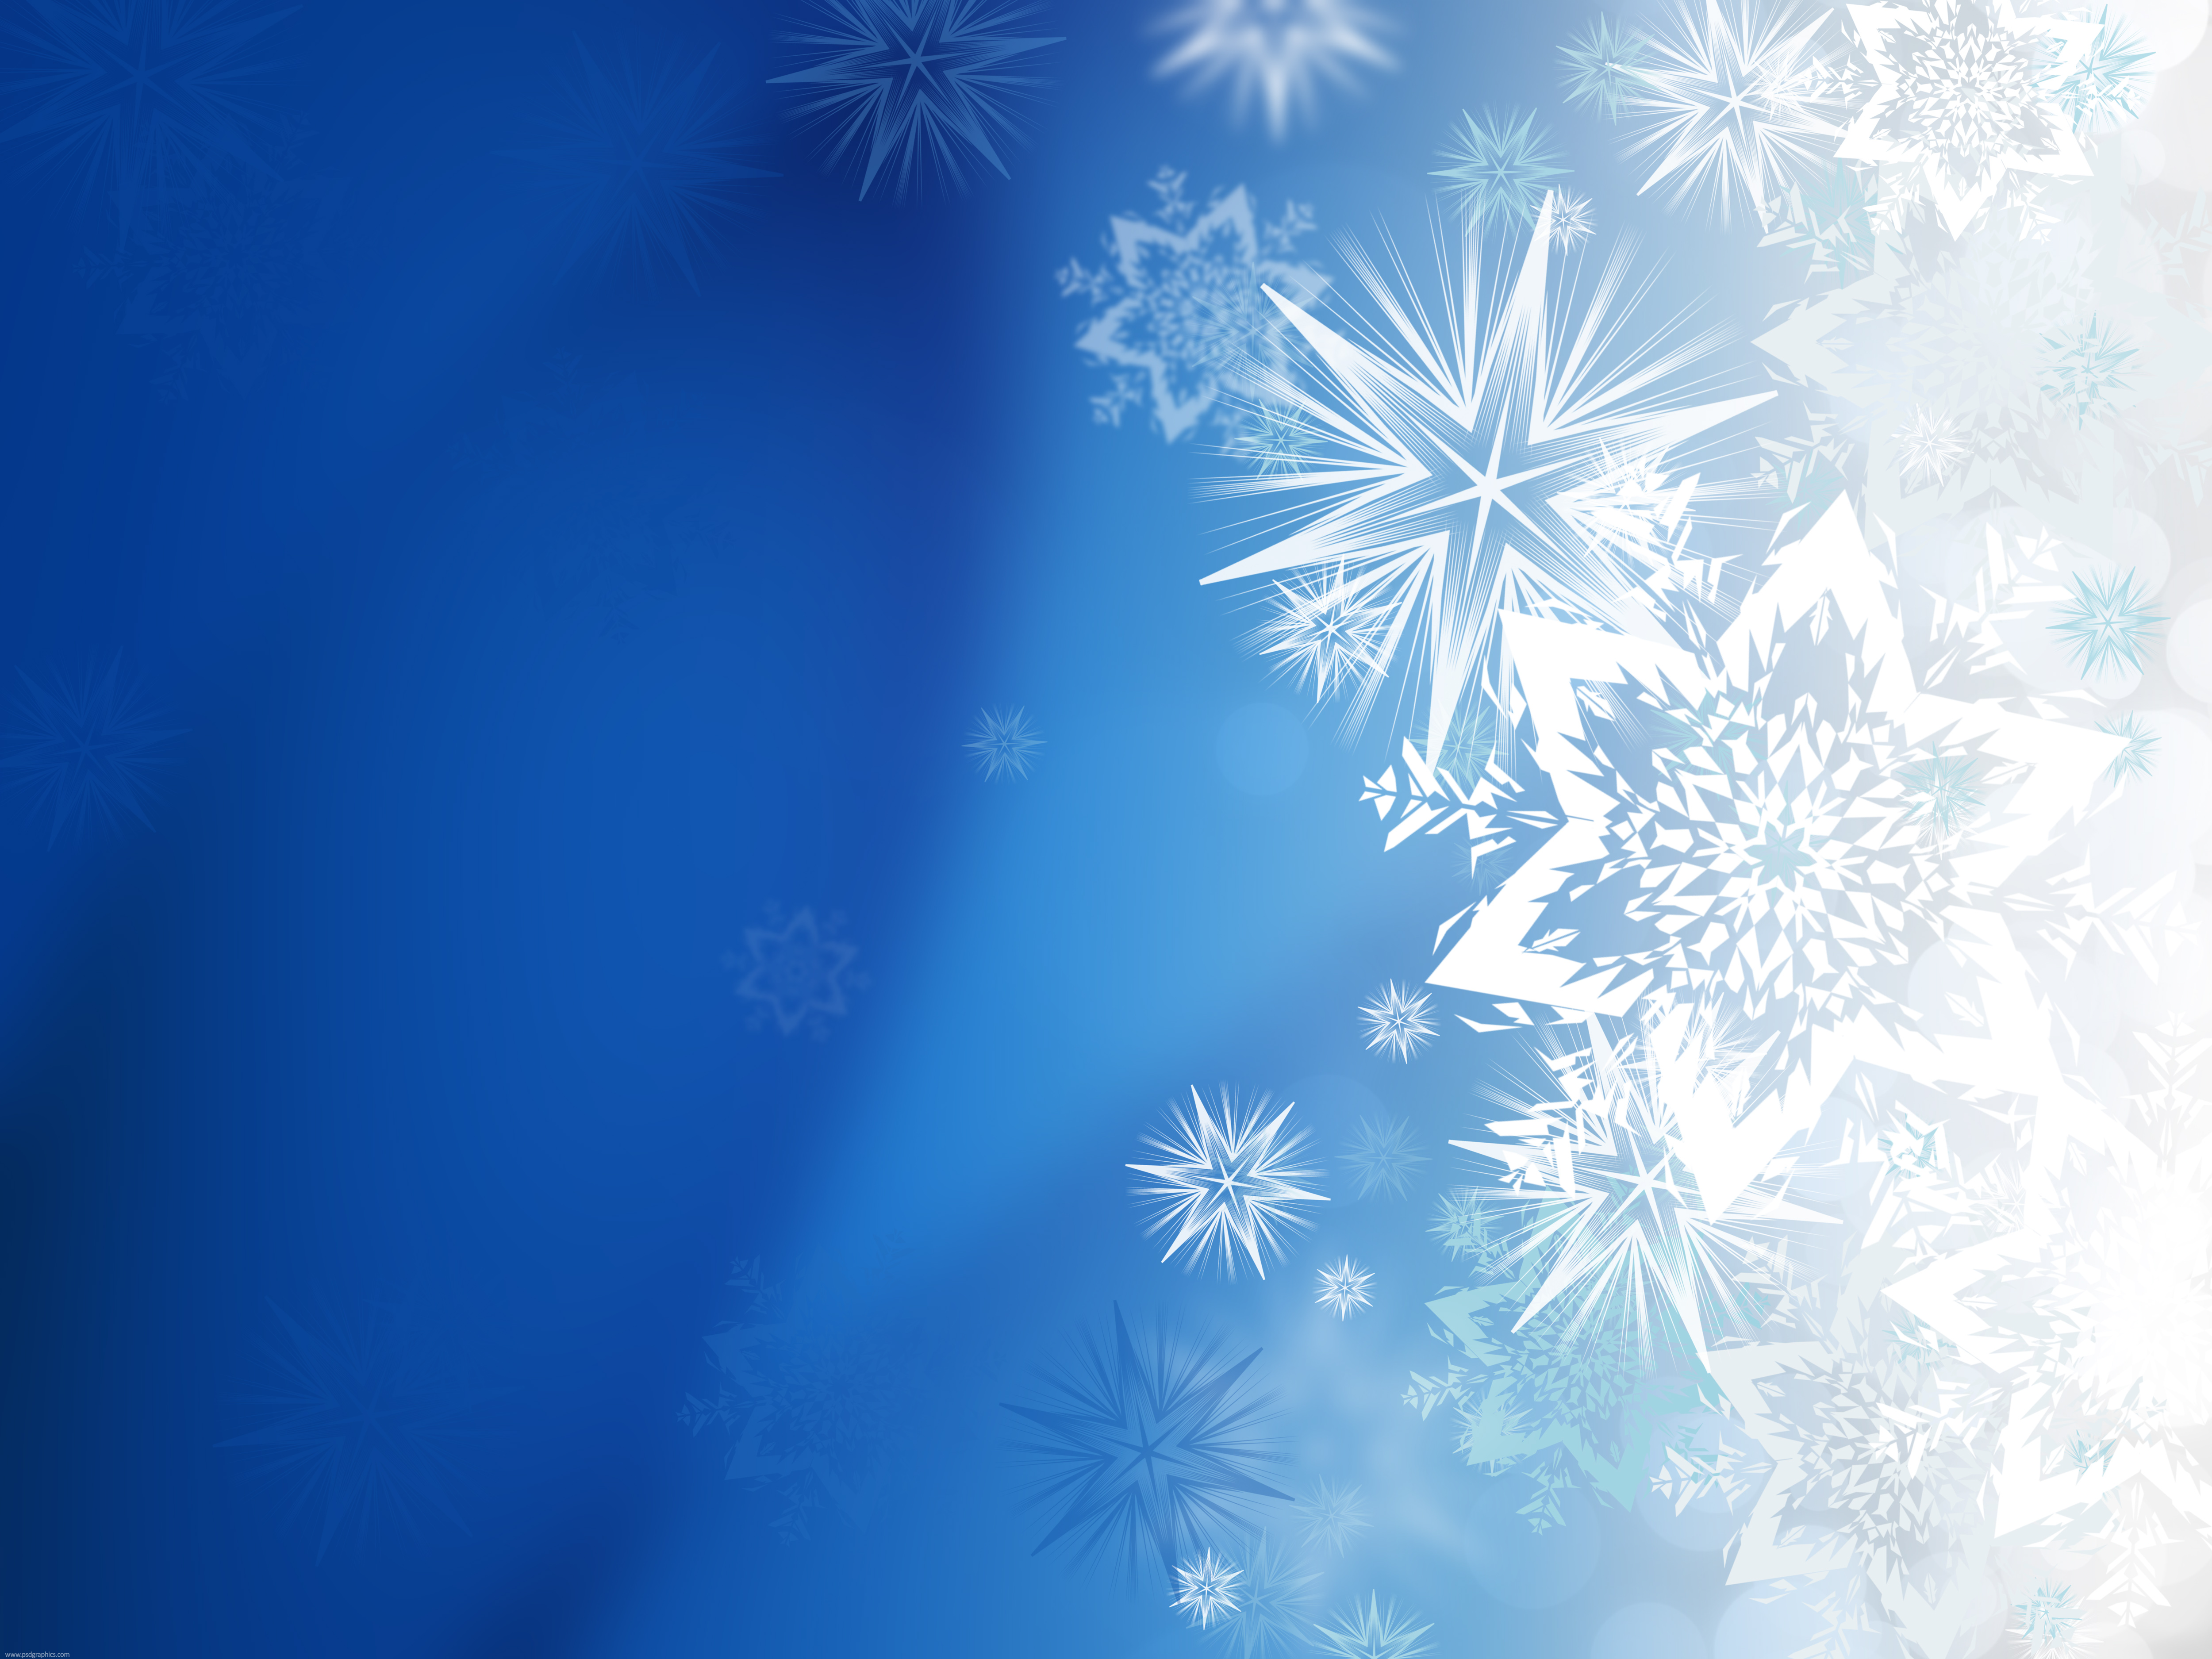 background xmas snowflakes background abstract winter design grungy 5000x3750